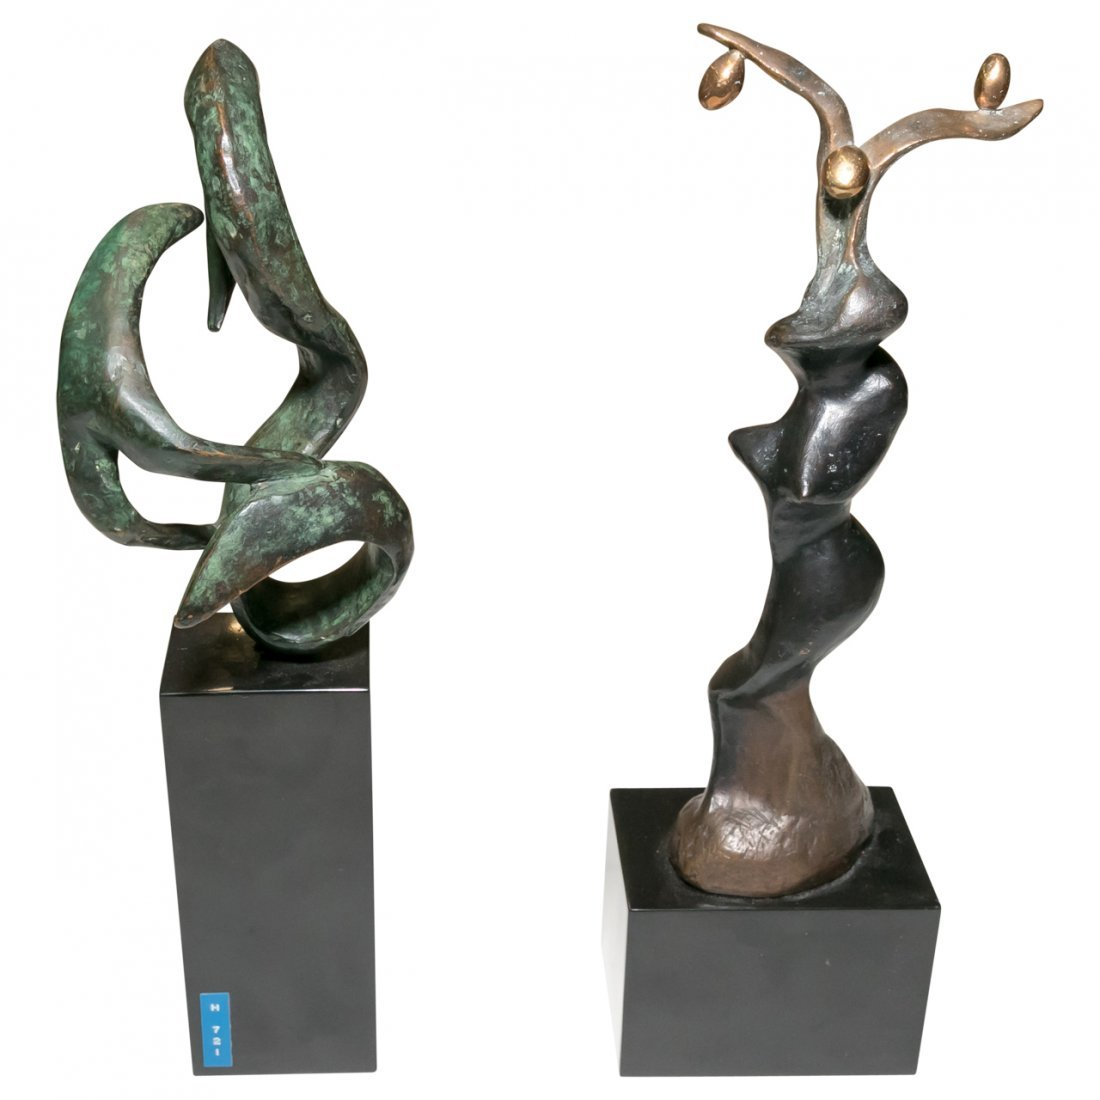 Two Patinated Modern Art Organic Form Sculpture